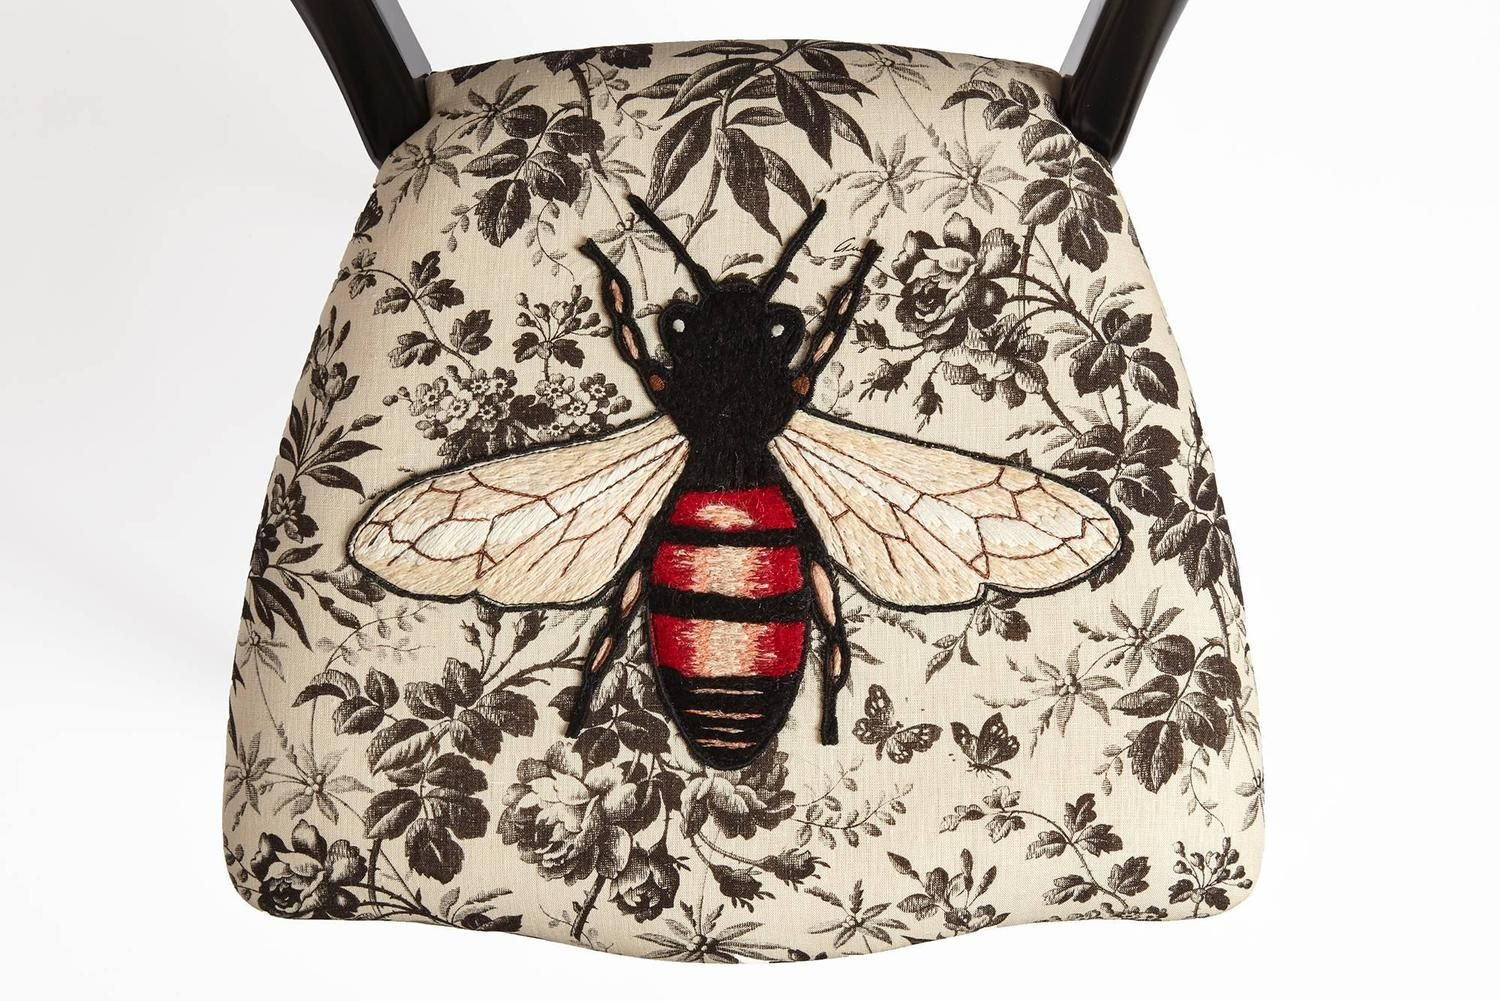 Unique Chair by Gucci. Hand Embroidered Bee on Black